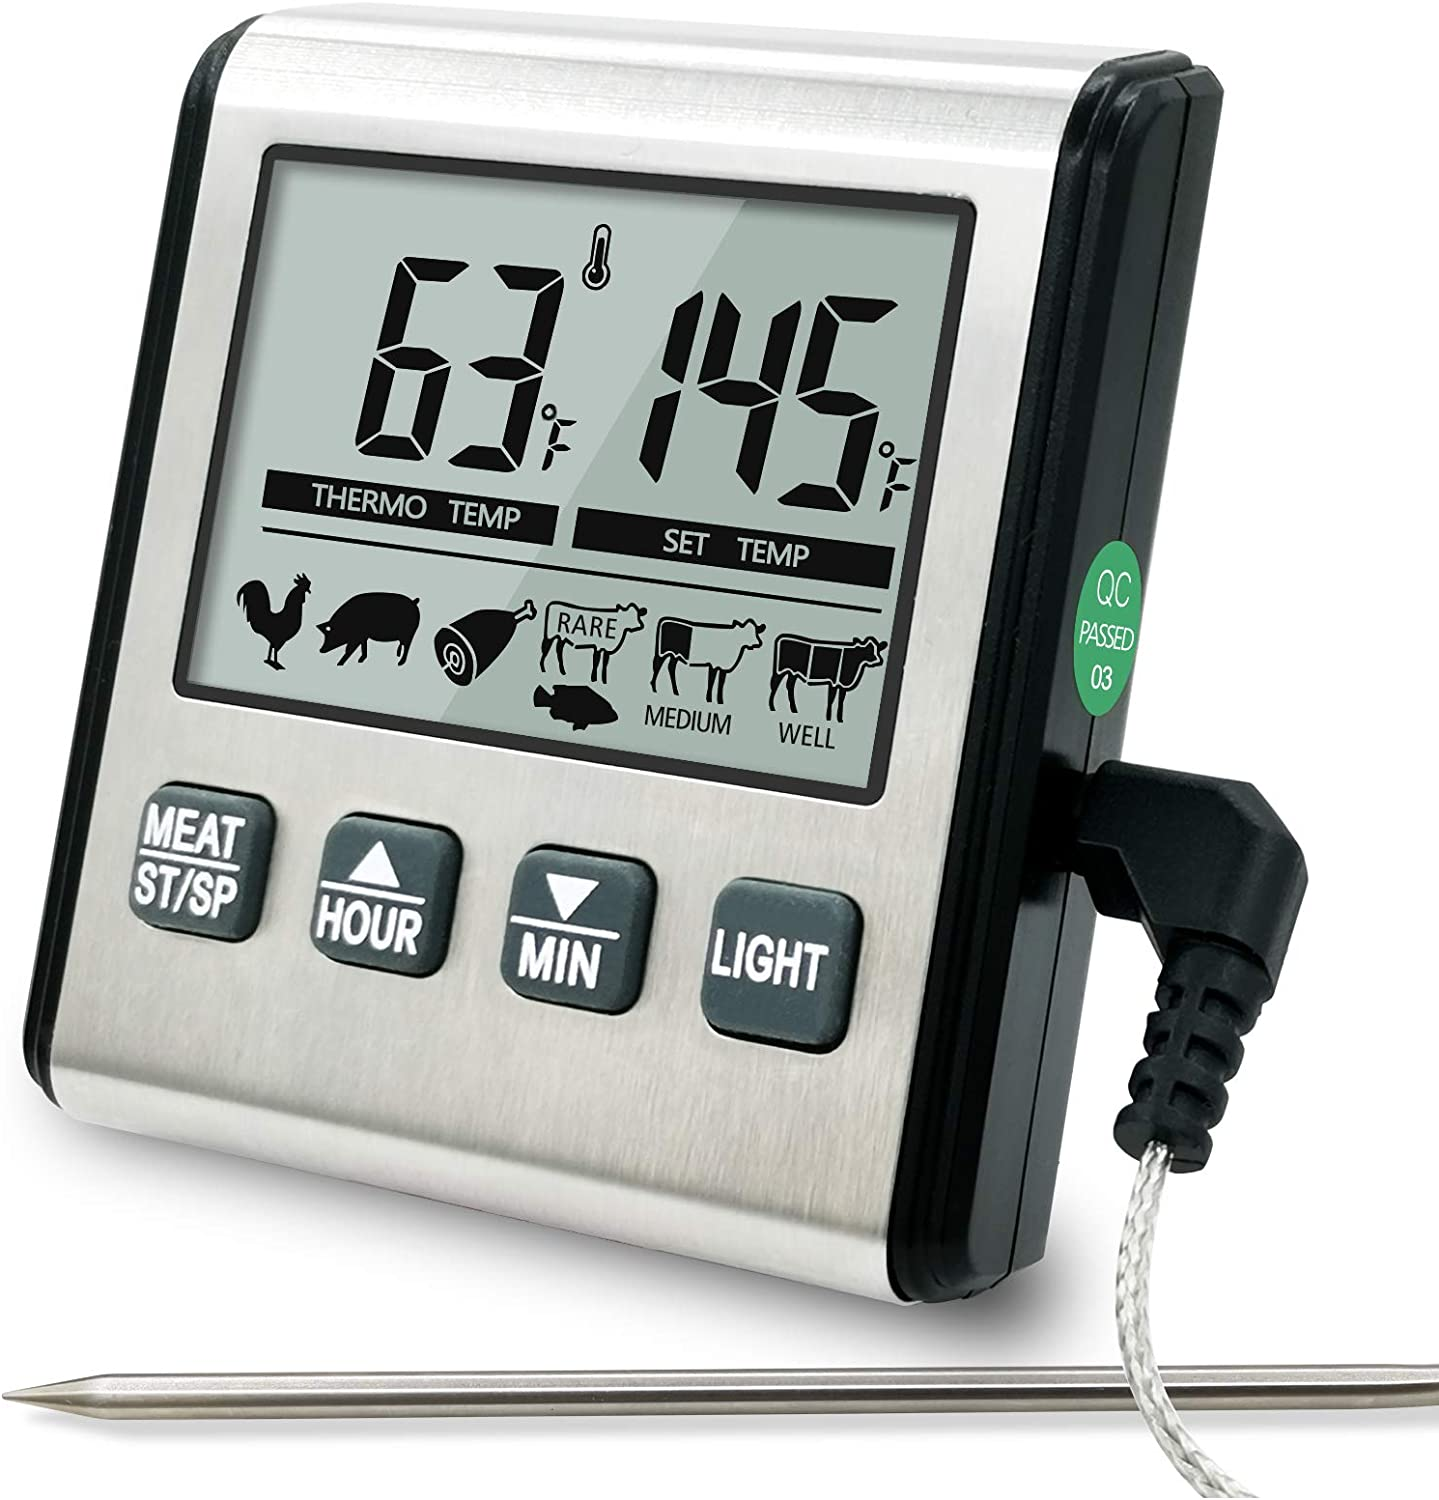 Digital Meat Thermometer for Cooking - Instant Read Food Thermometer with Stainless Steel Probe,Timer for Kitchen,Oven Safe,BBQ,Grill,Smoker